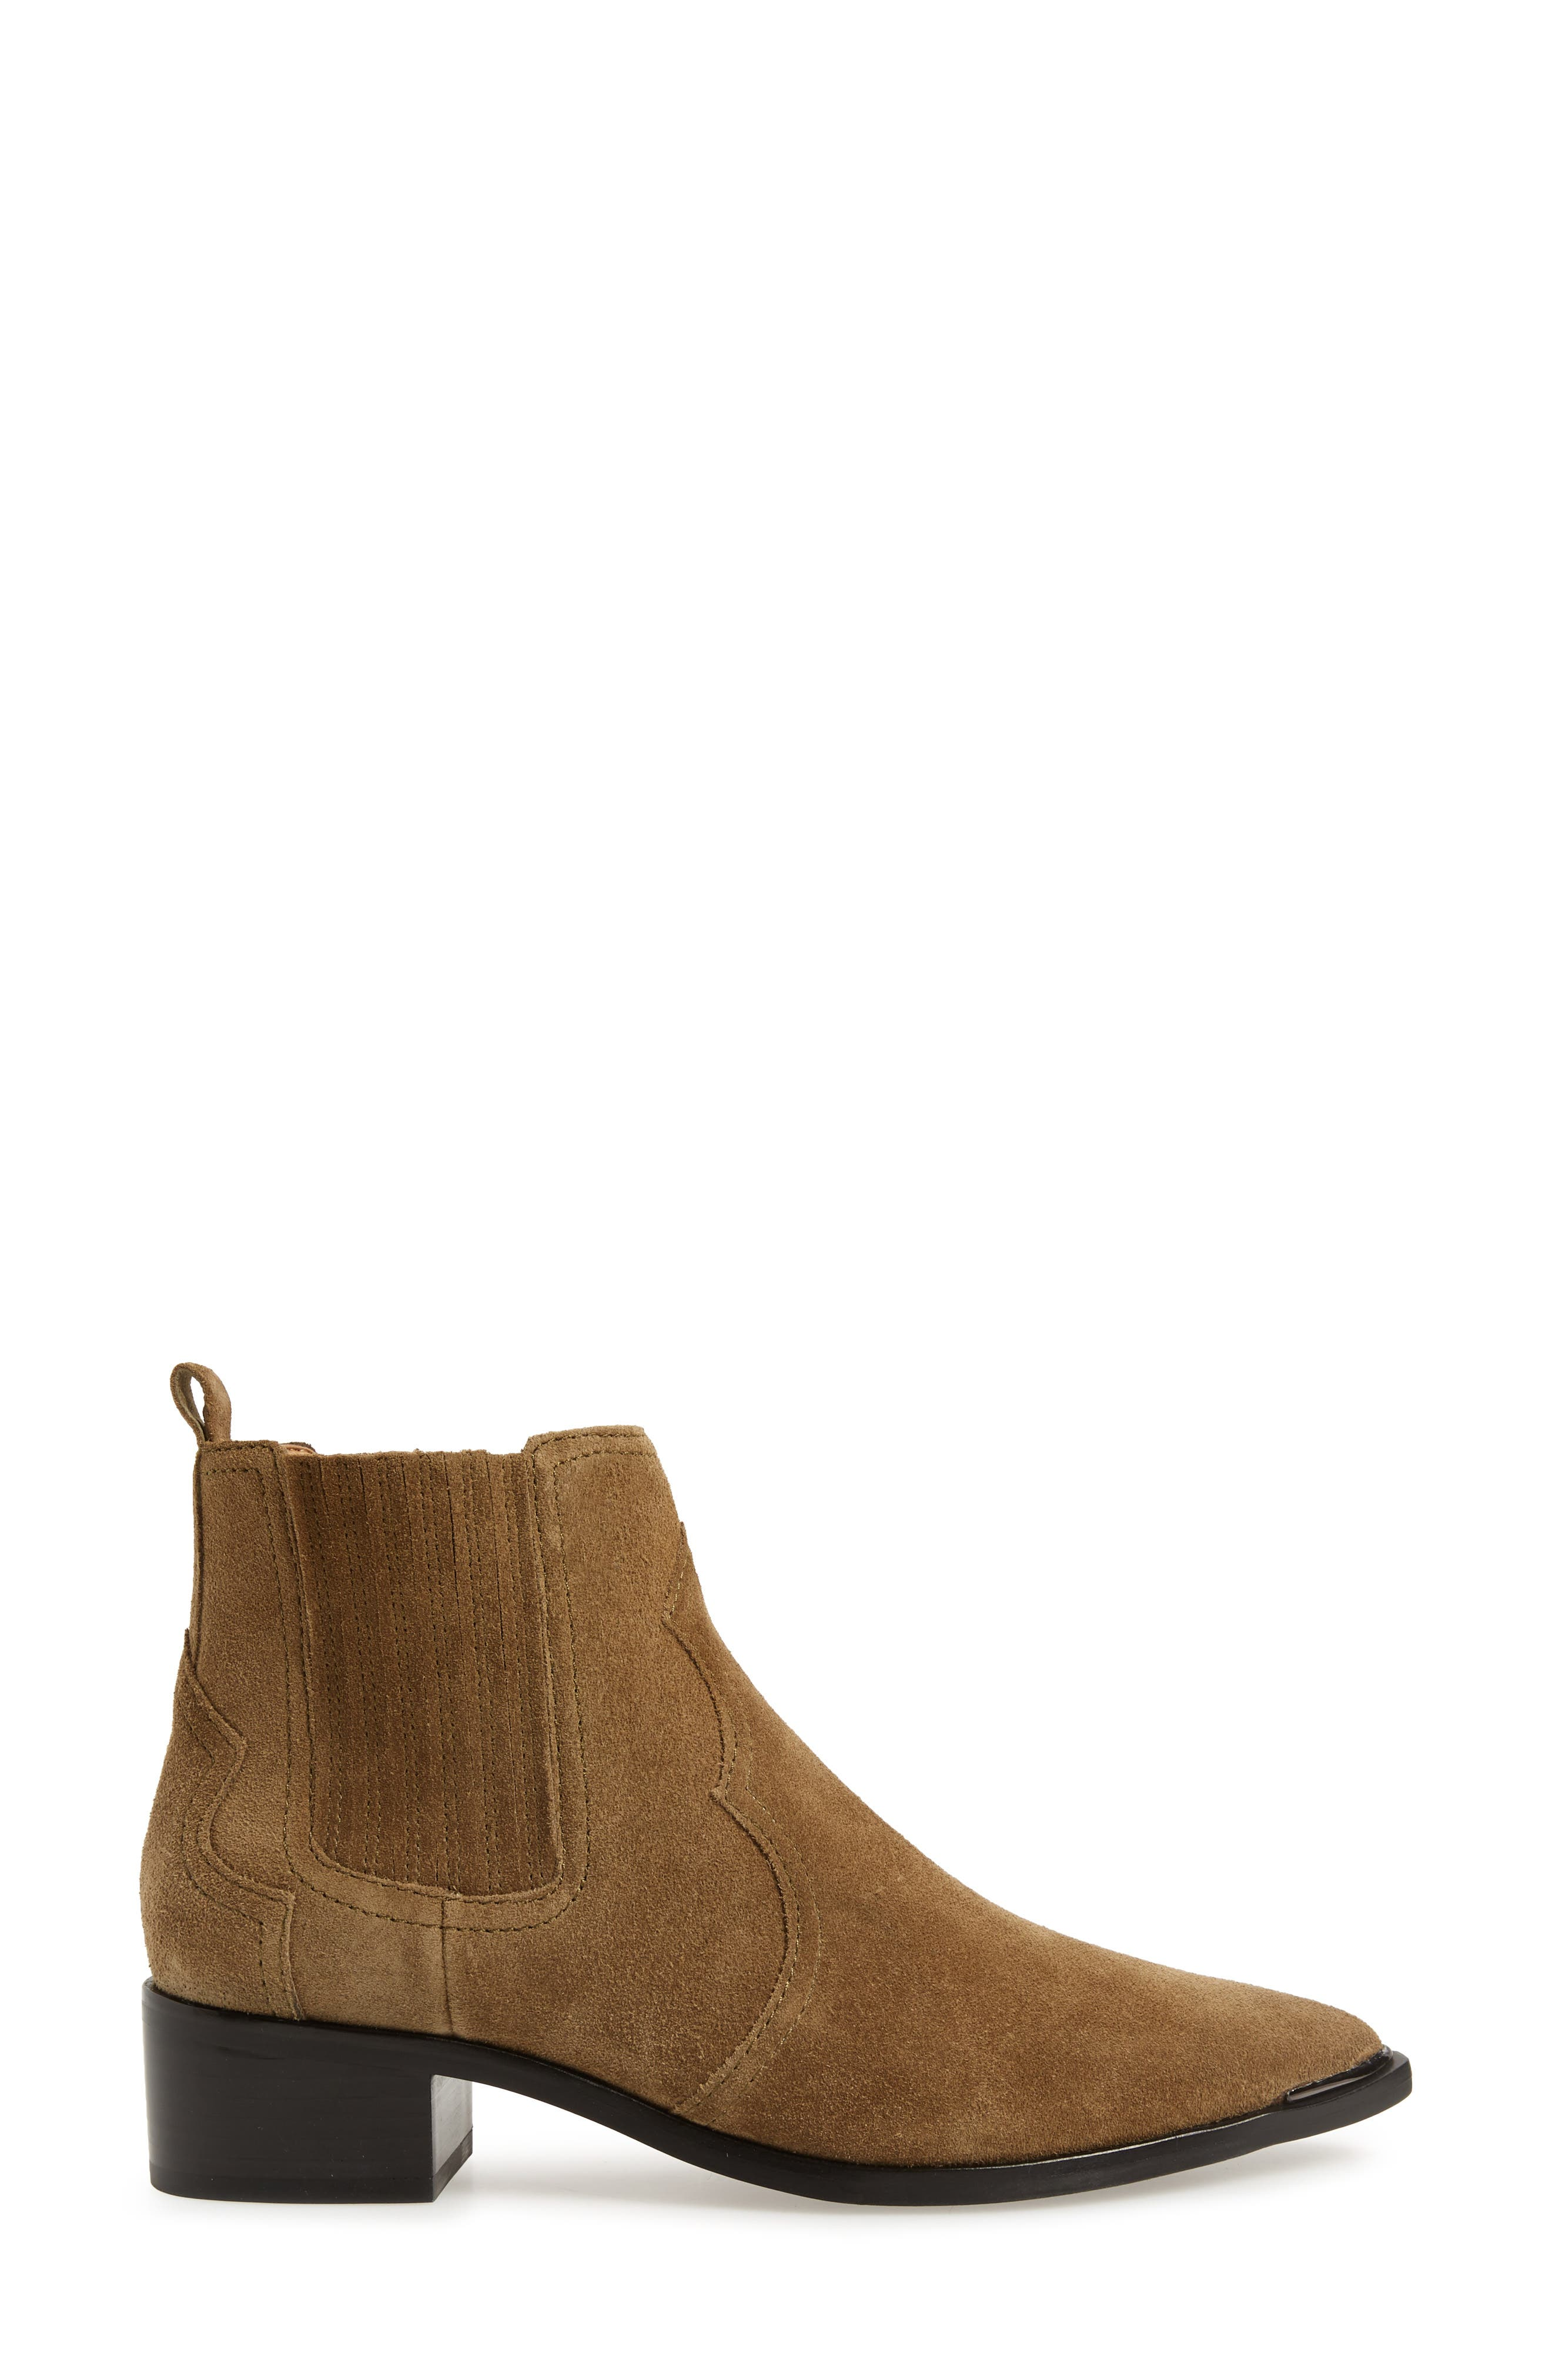 Yohani Bootie,                             Alternate thumbnail 3, color,                             TAUPE SUEDE